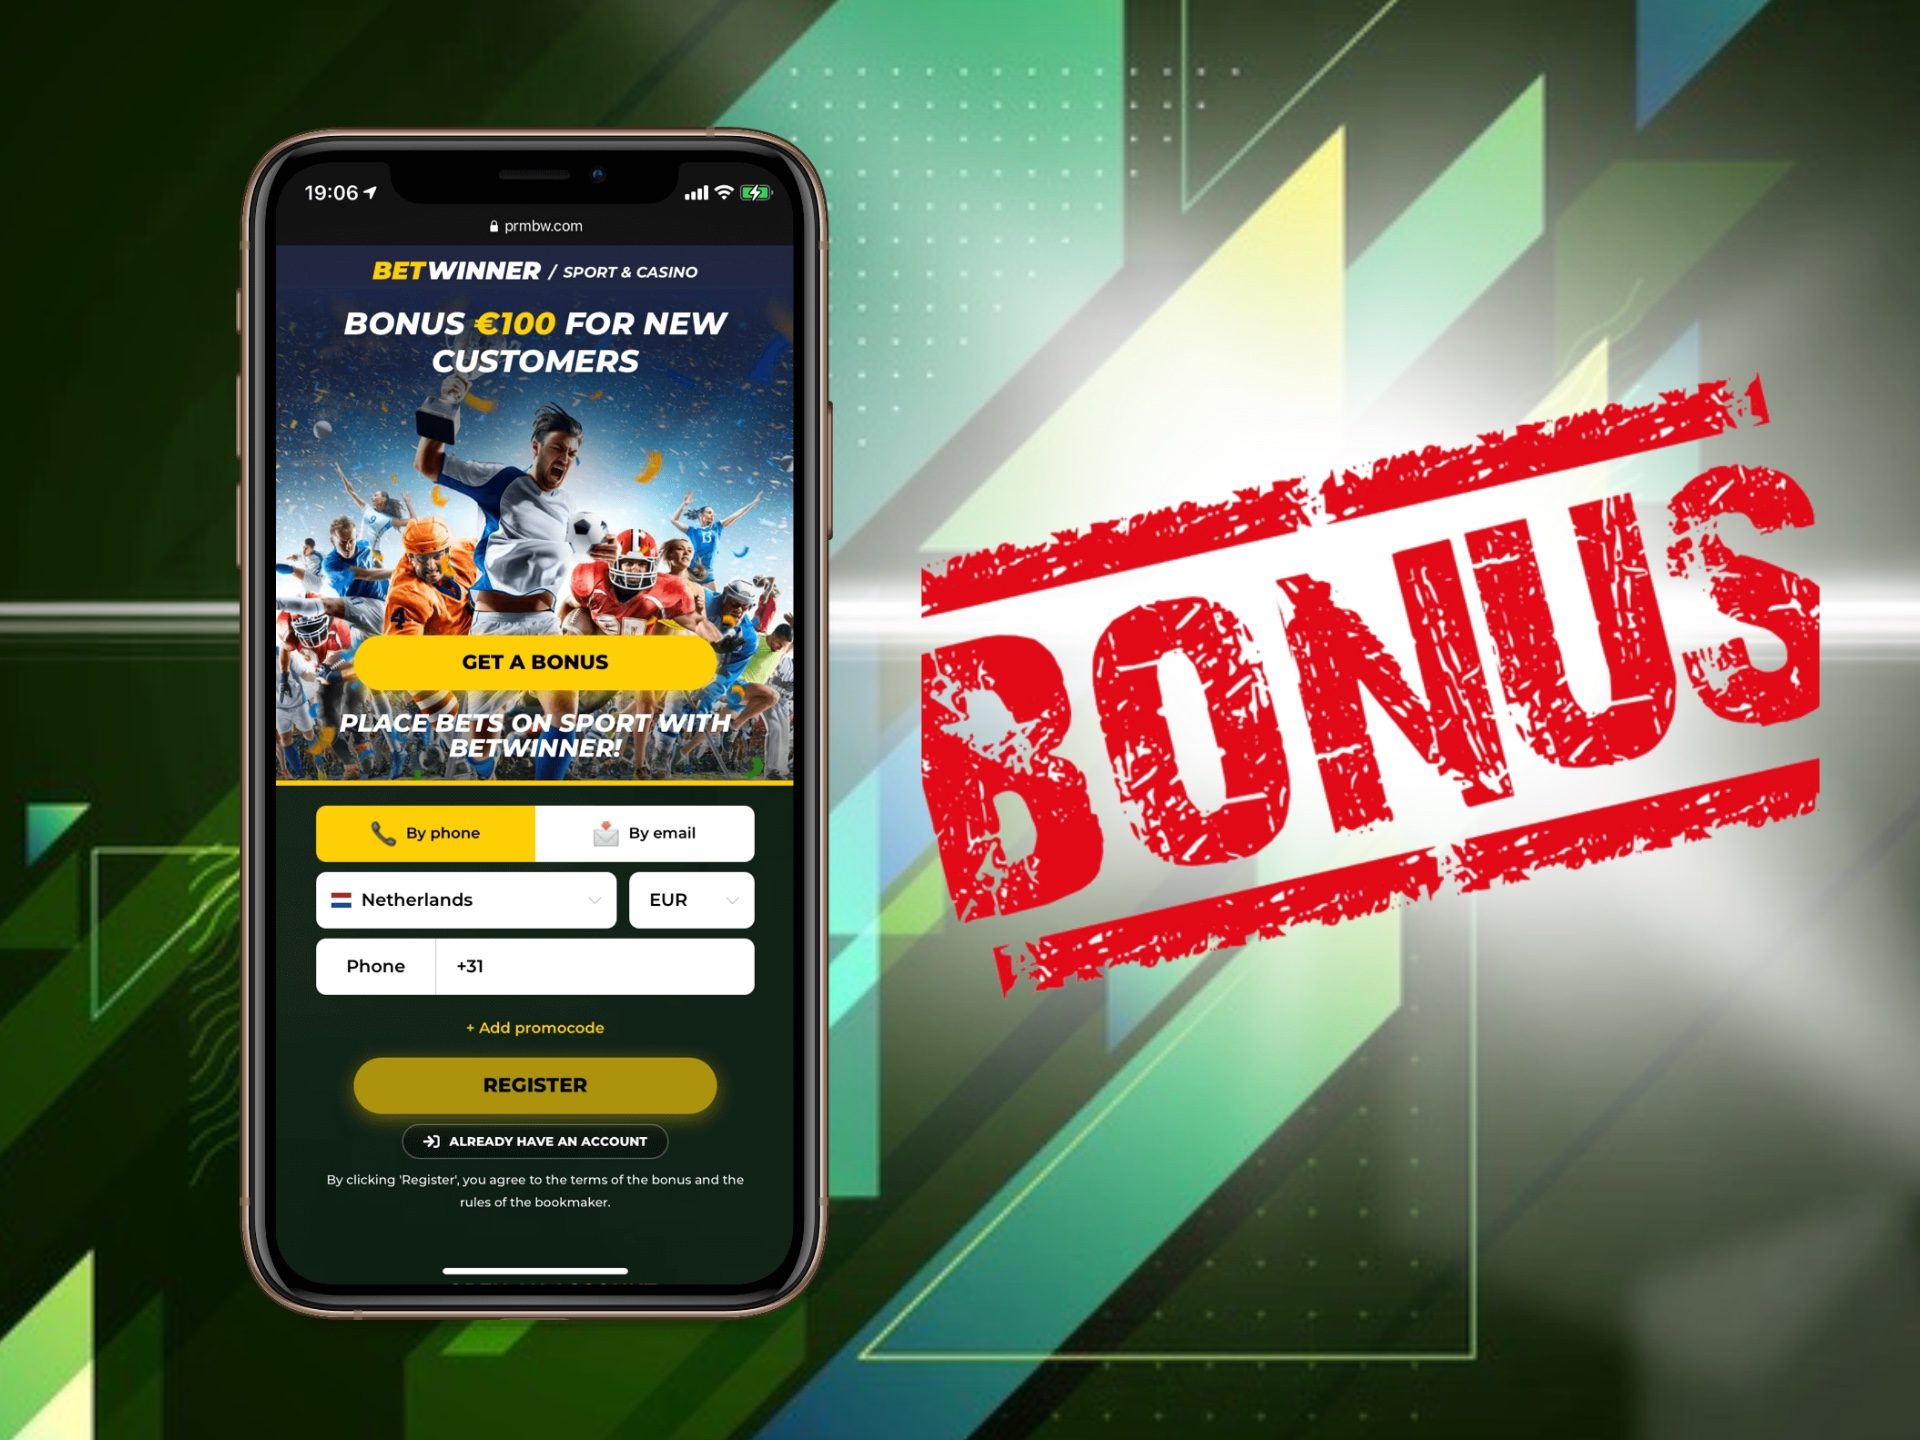 Make a deposit via your mobile phone and get your welcome bonus at Betwinner app.